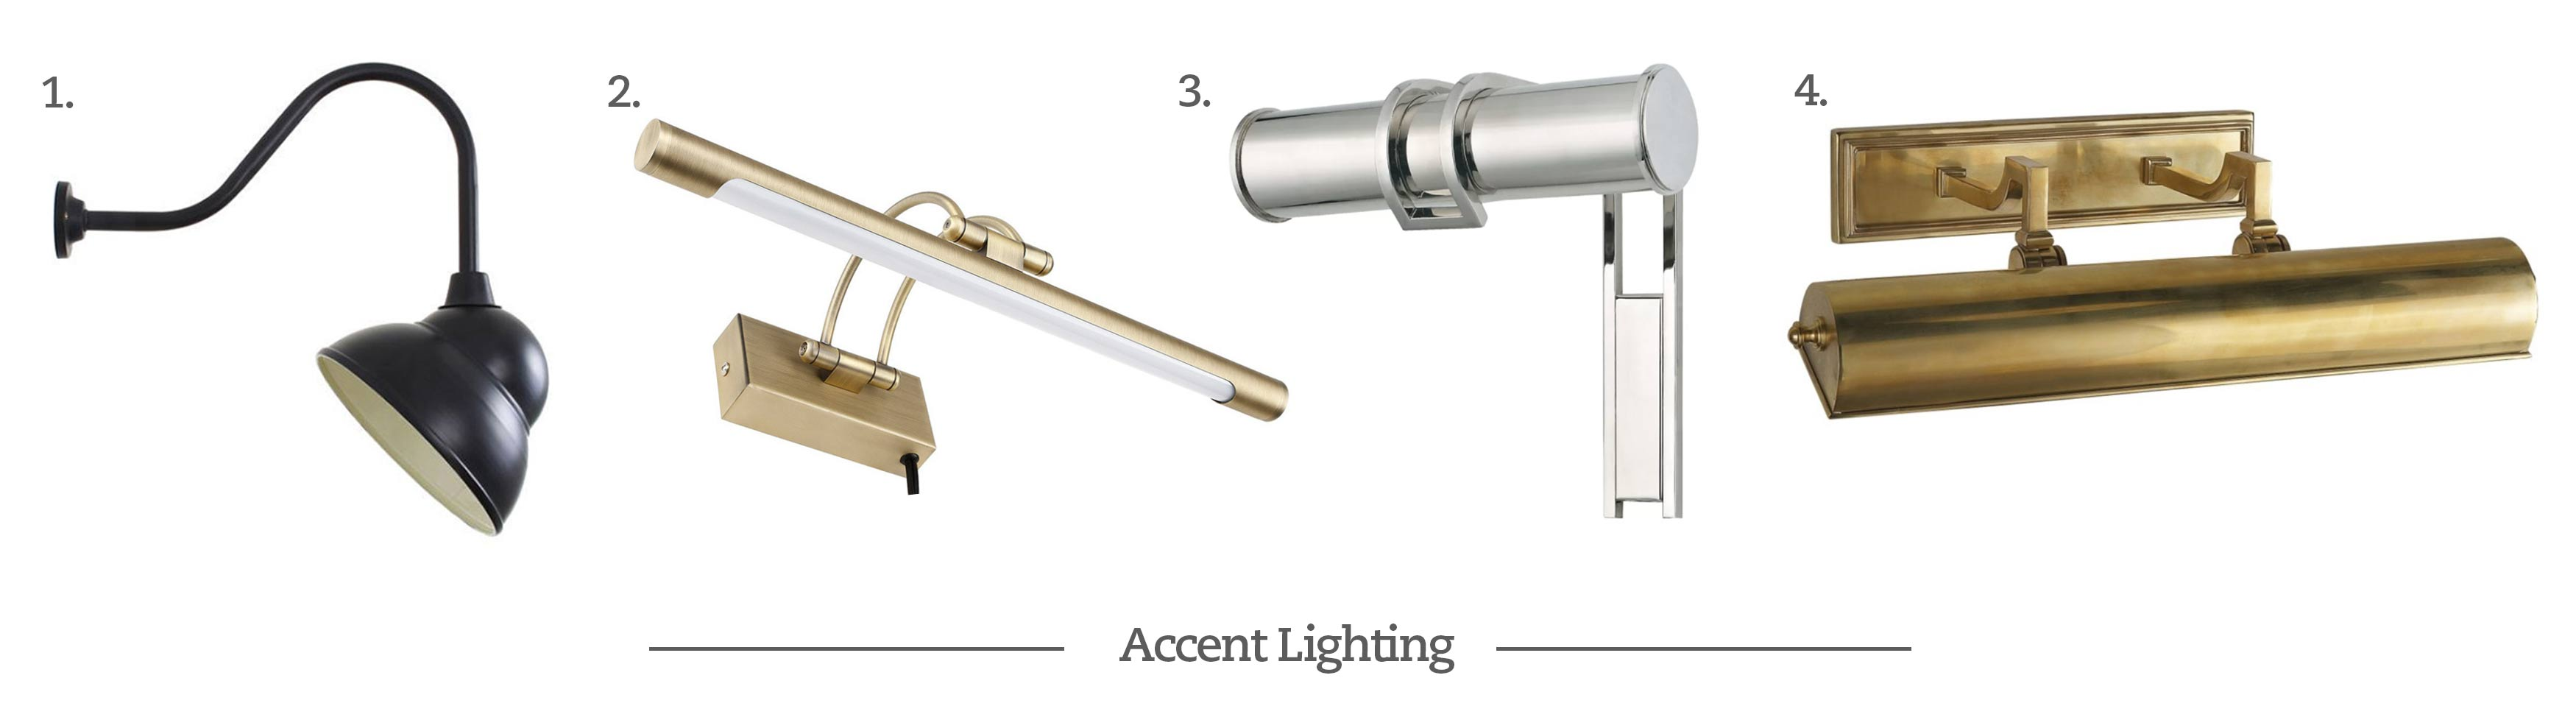 Accent Lighting Options